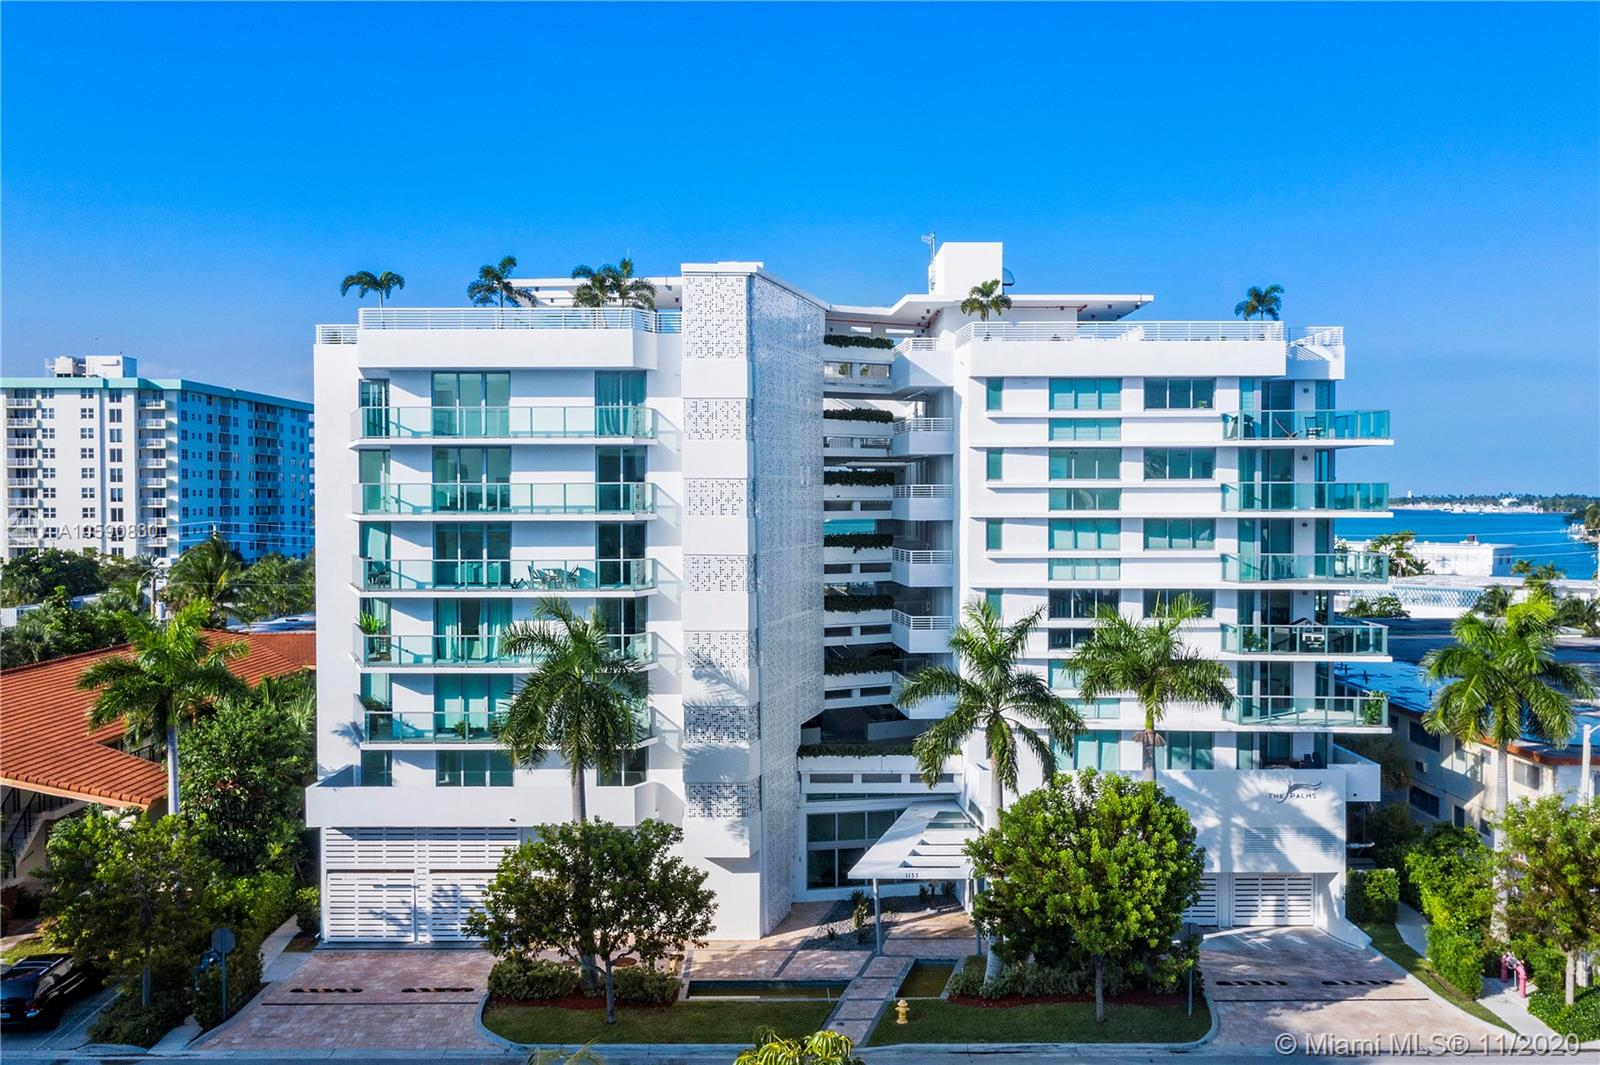 Brand new boutique style building in Bay Harbor Islands. Unit has 2 bedrooms and 2 bathrooms. Offers stainless steel appliances, tile throughout, washer and dryer inside, impact windows and wine cooler. Gorgeous views from the rooftop infinity pool and hot tub. Unit comes with 2 parking spaces (#79, #80). Walking distance to shopping, places of worship, and A+ Bay Harbor K-8 Education Center. Great for investment opportunity. Unit is currently rented through April 30,2021 at $2,800 per Month. 24 hour notice needed for showing.